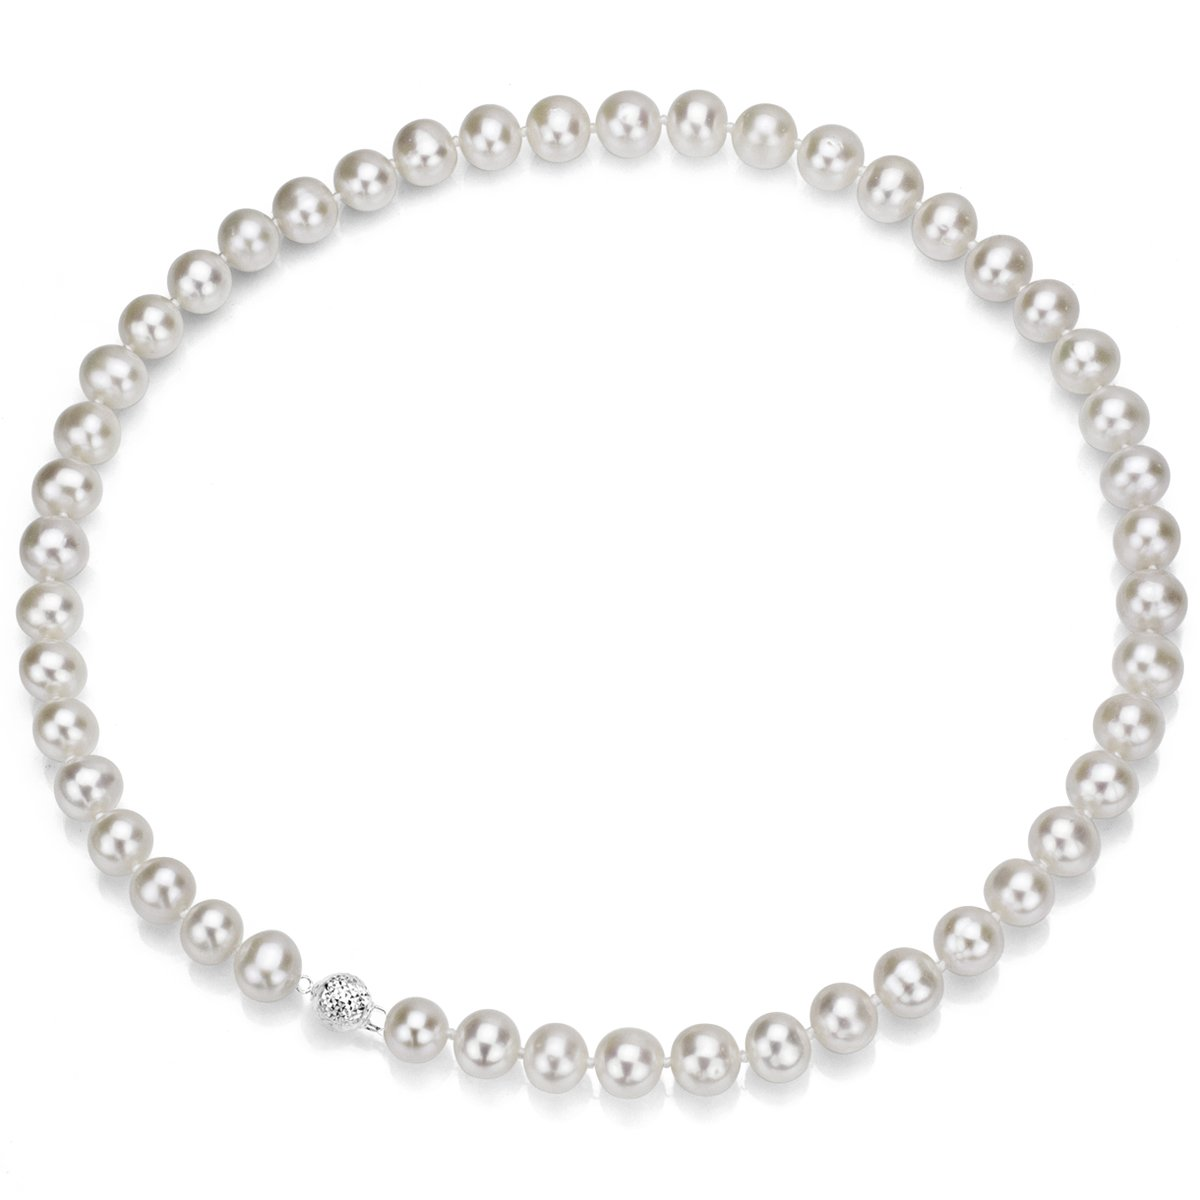 Sterling Silver 8-9mm White Freshwater Cultured Pearl Necklace 18 Inch AAA Quality